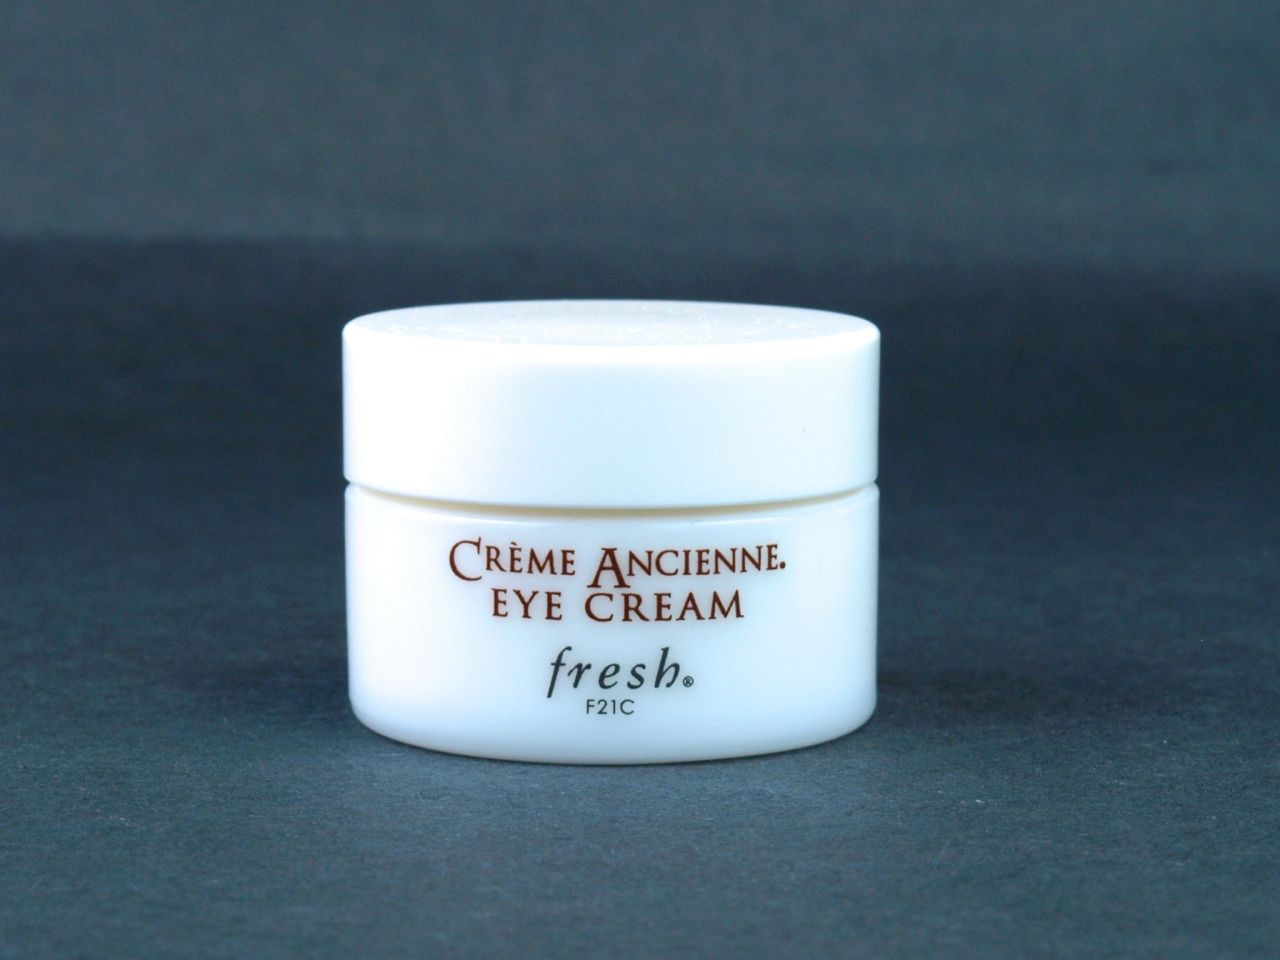 Fresh Crème Ancienne Eye Cream: Review